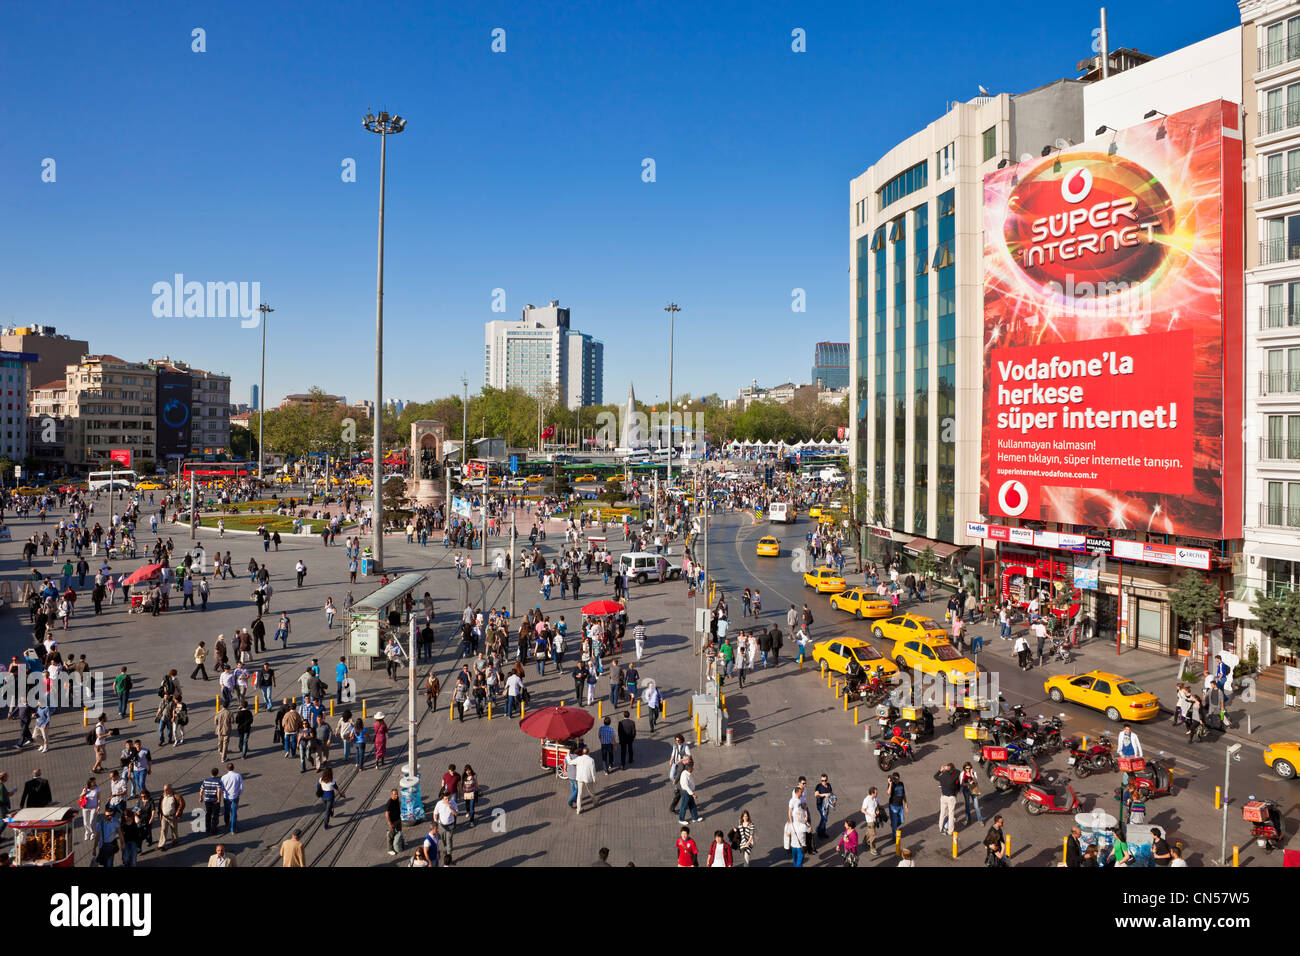 Turkey, Istanbul, Beyoglu, Taksim district, Taksim square - Stock Image